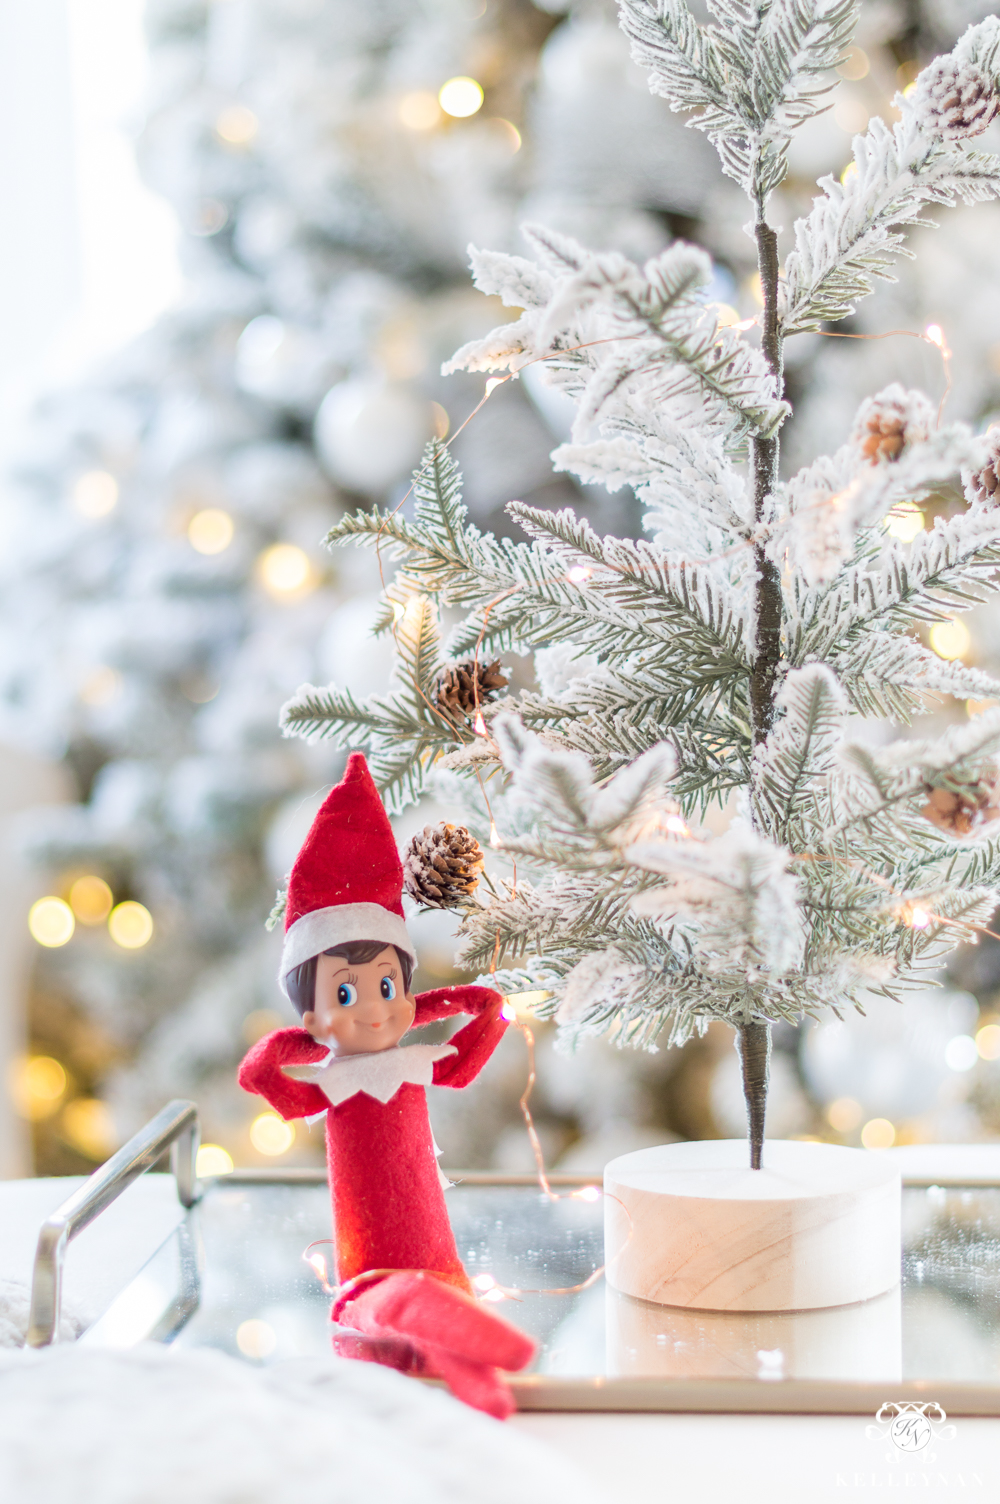 Grownup Elf on the Shelf Ideas for Adults - a new and unique Christmas tradition